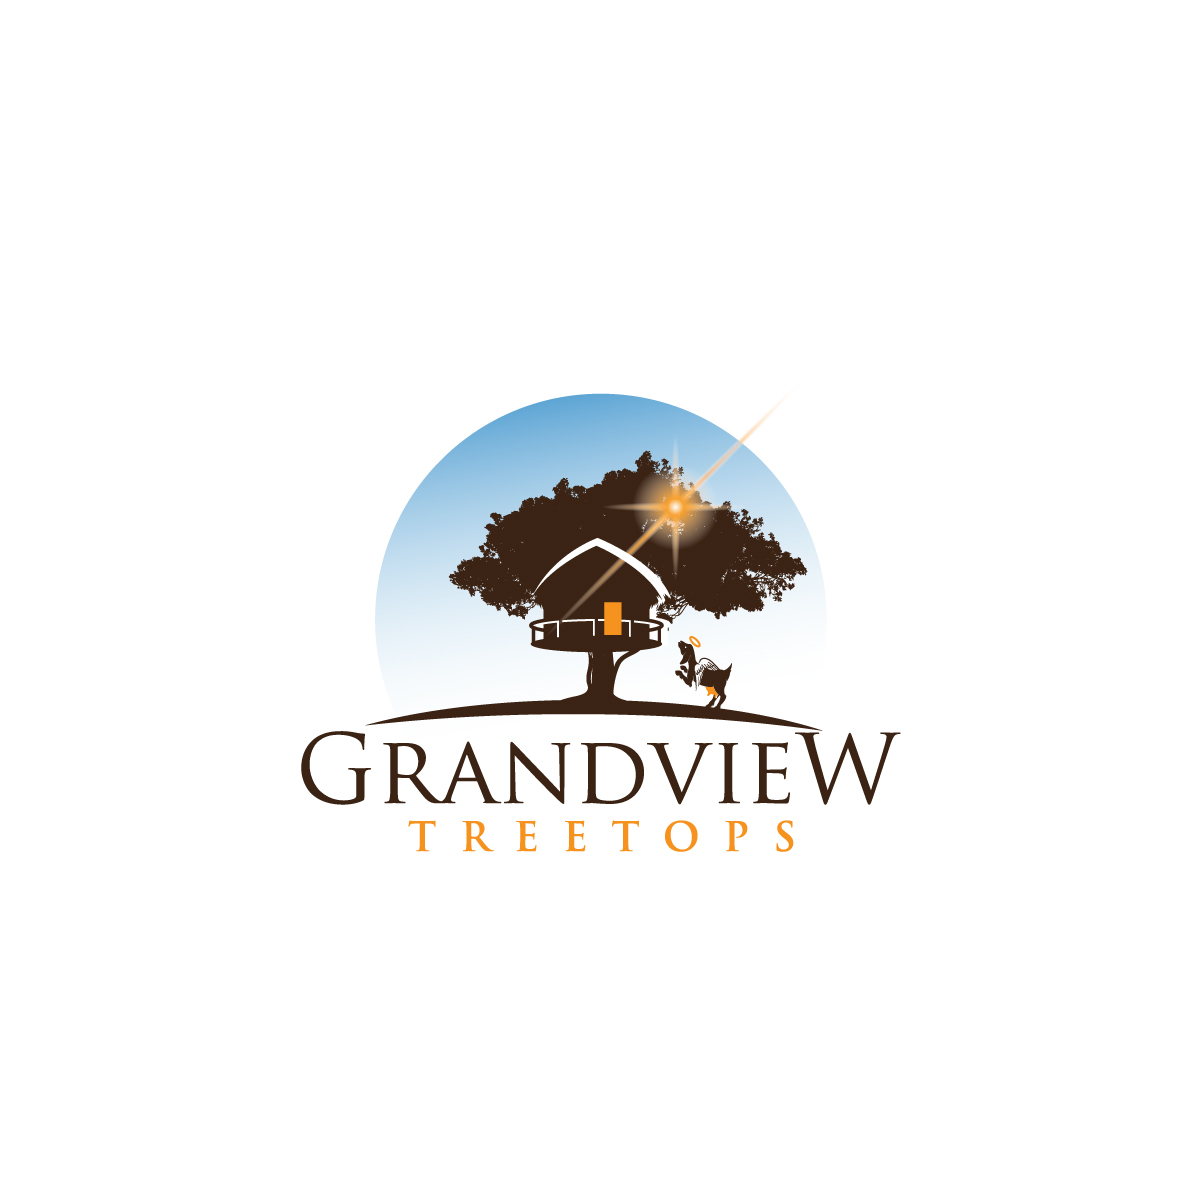 Logo design for a GrandView Treetops by creative.bugs